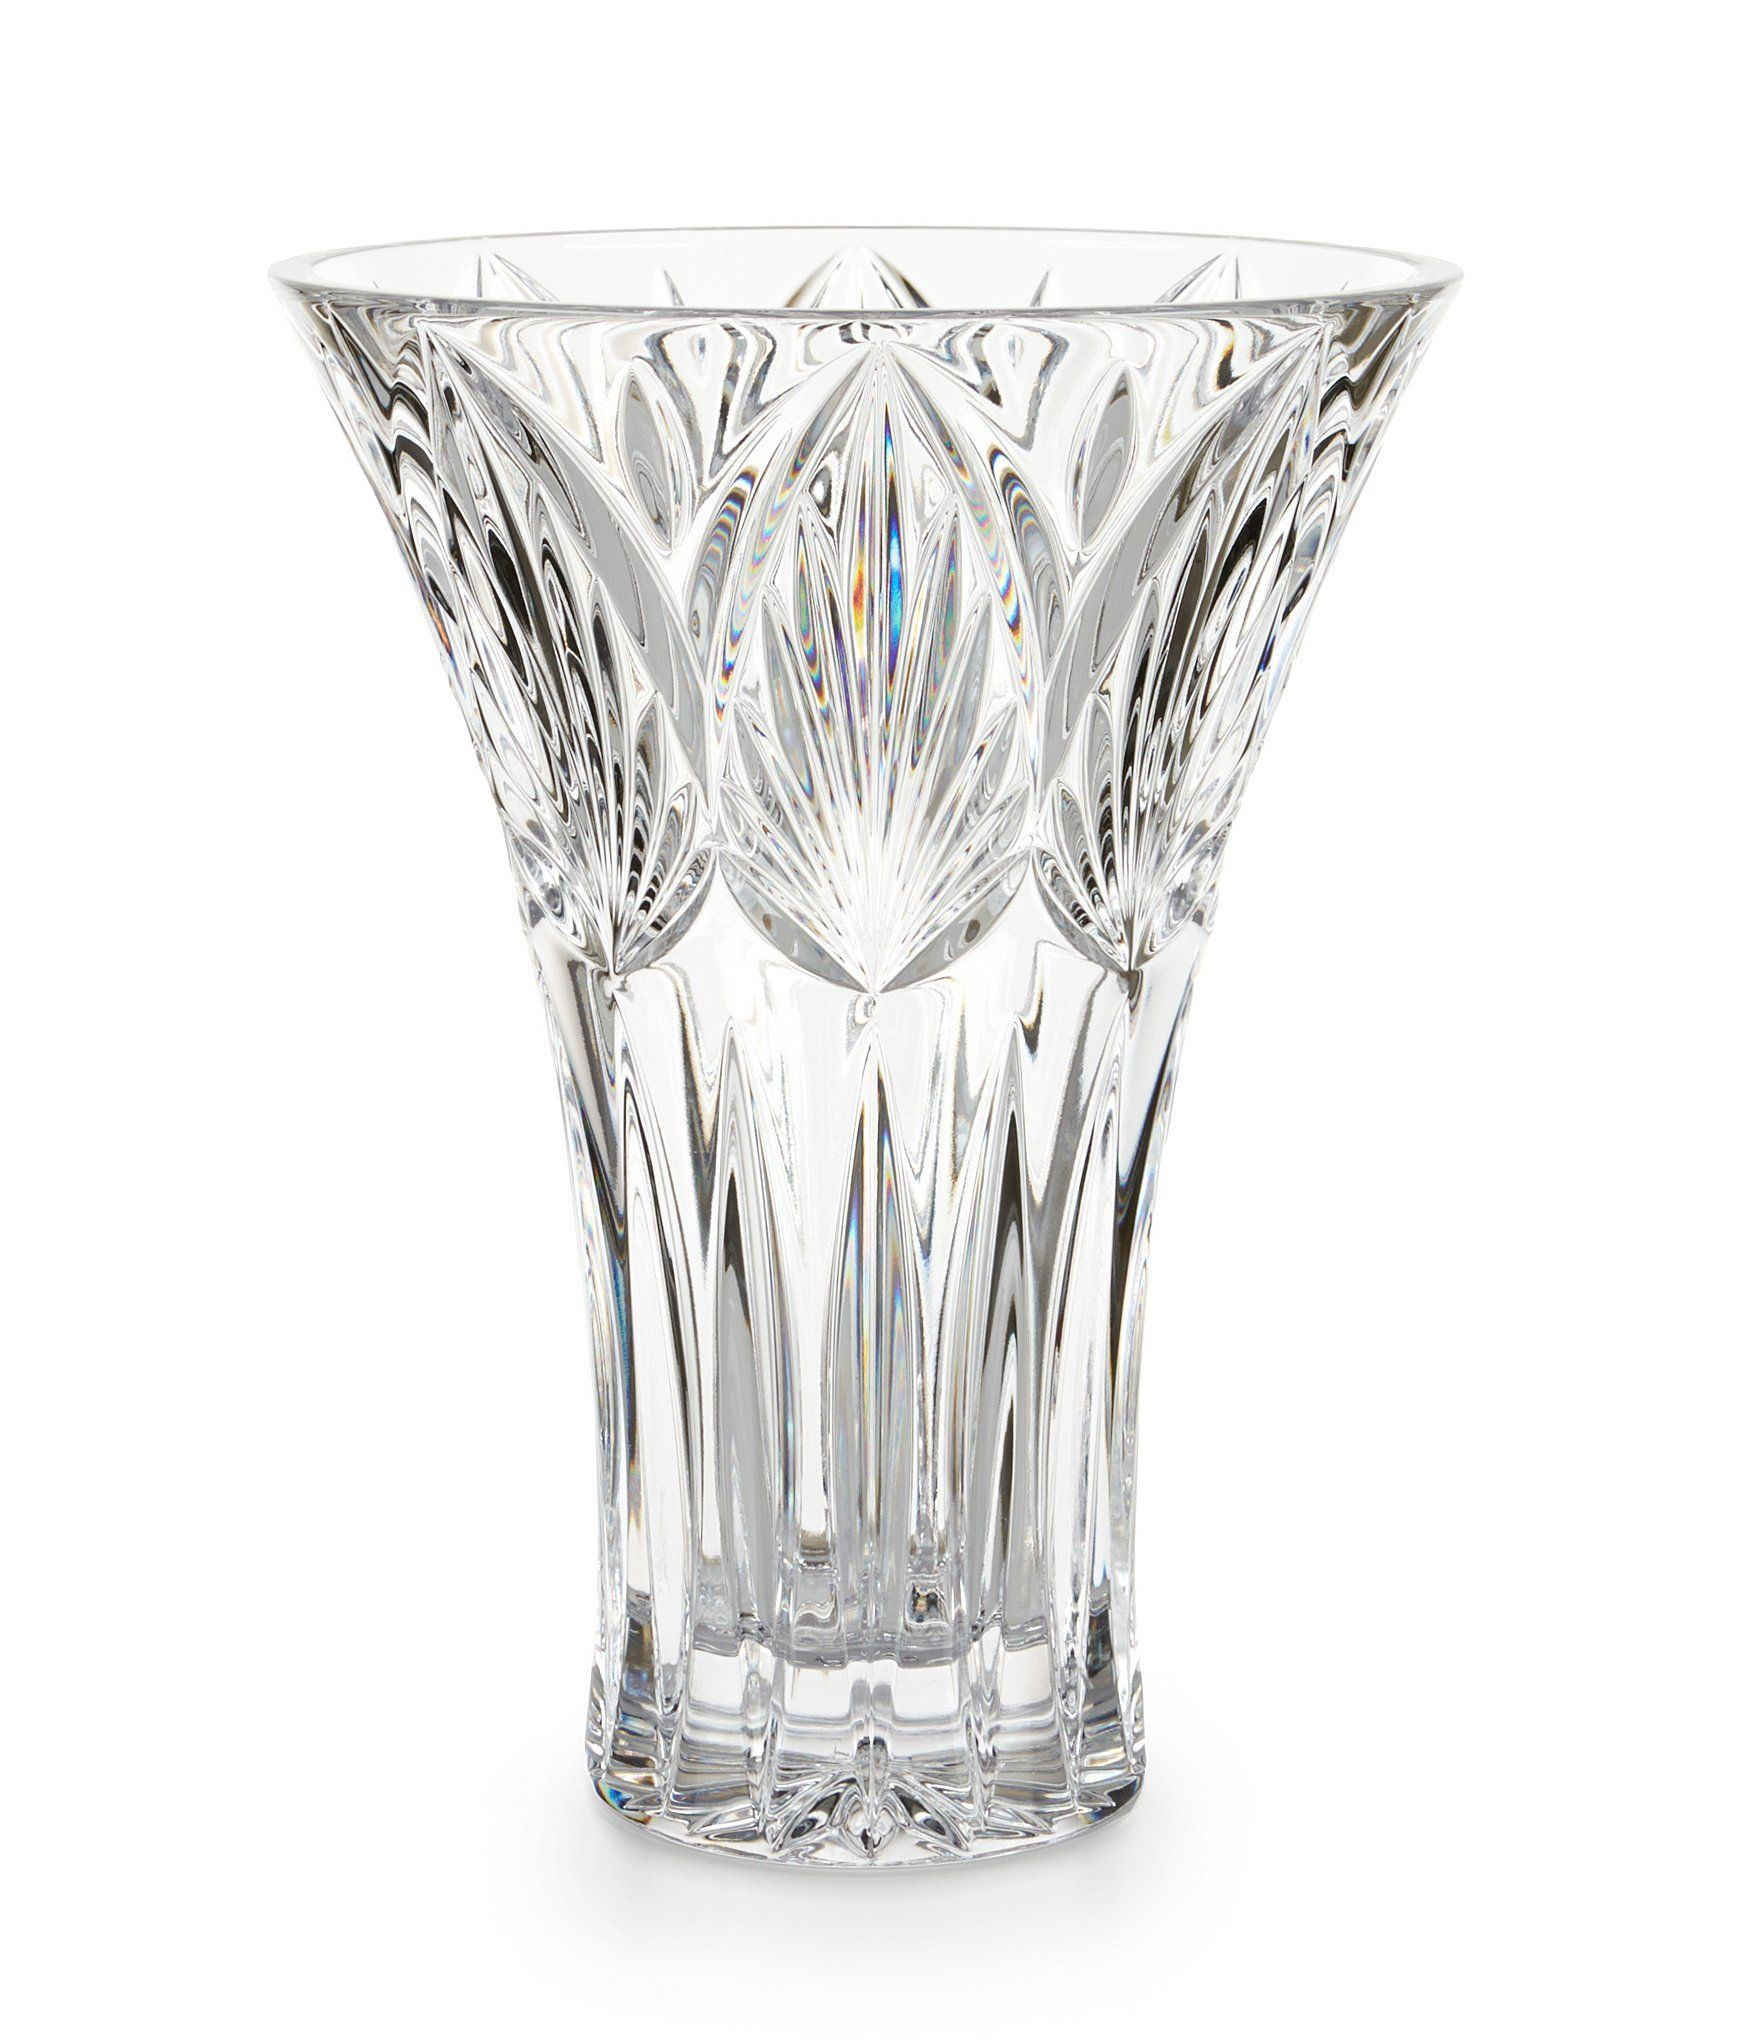 marquis by waterford markham vase 9 of 21 waterford crystal vase marquis the weekly world intended for waterford crystal vase marquis beautiful waterford westbridge crystal vase of waterford crystal vase marquis